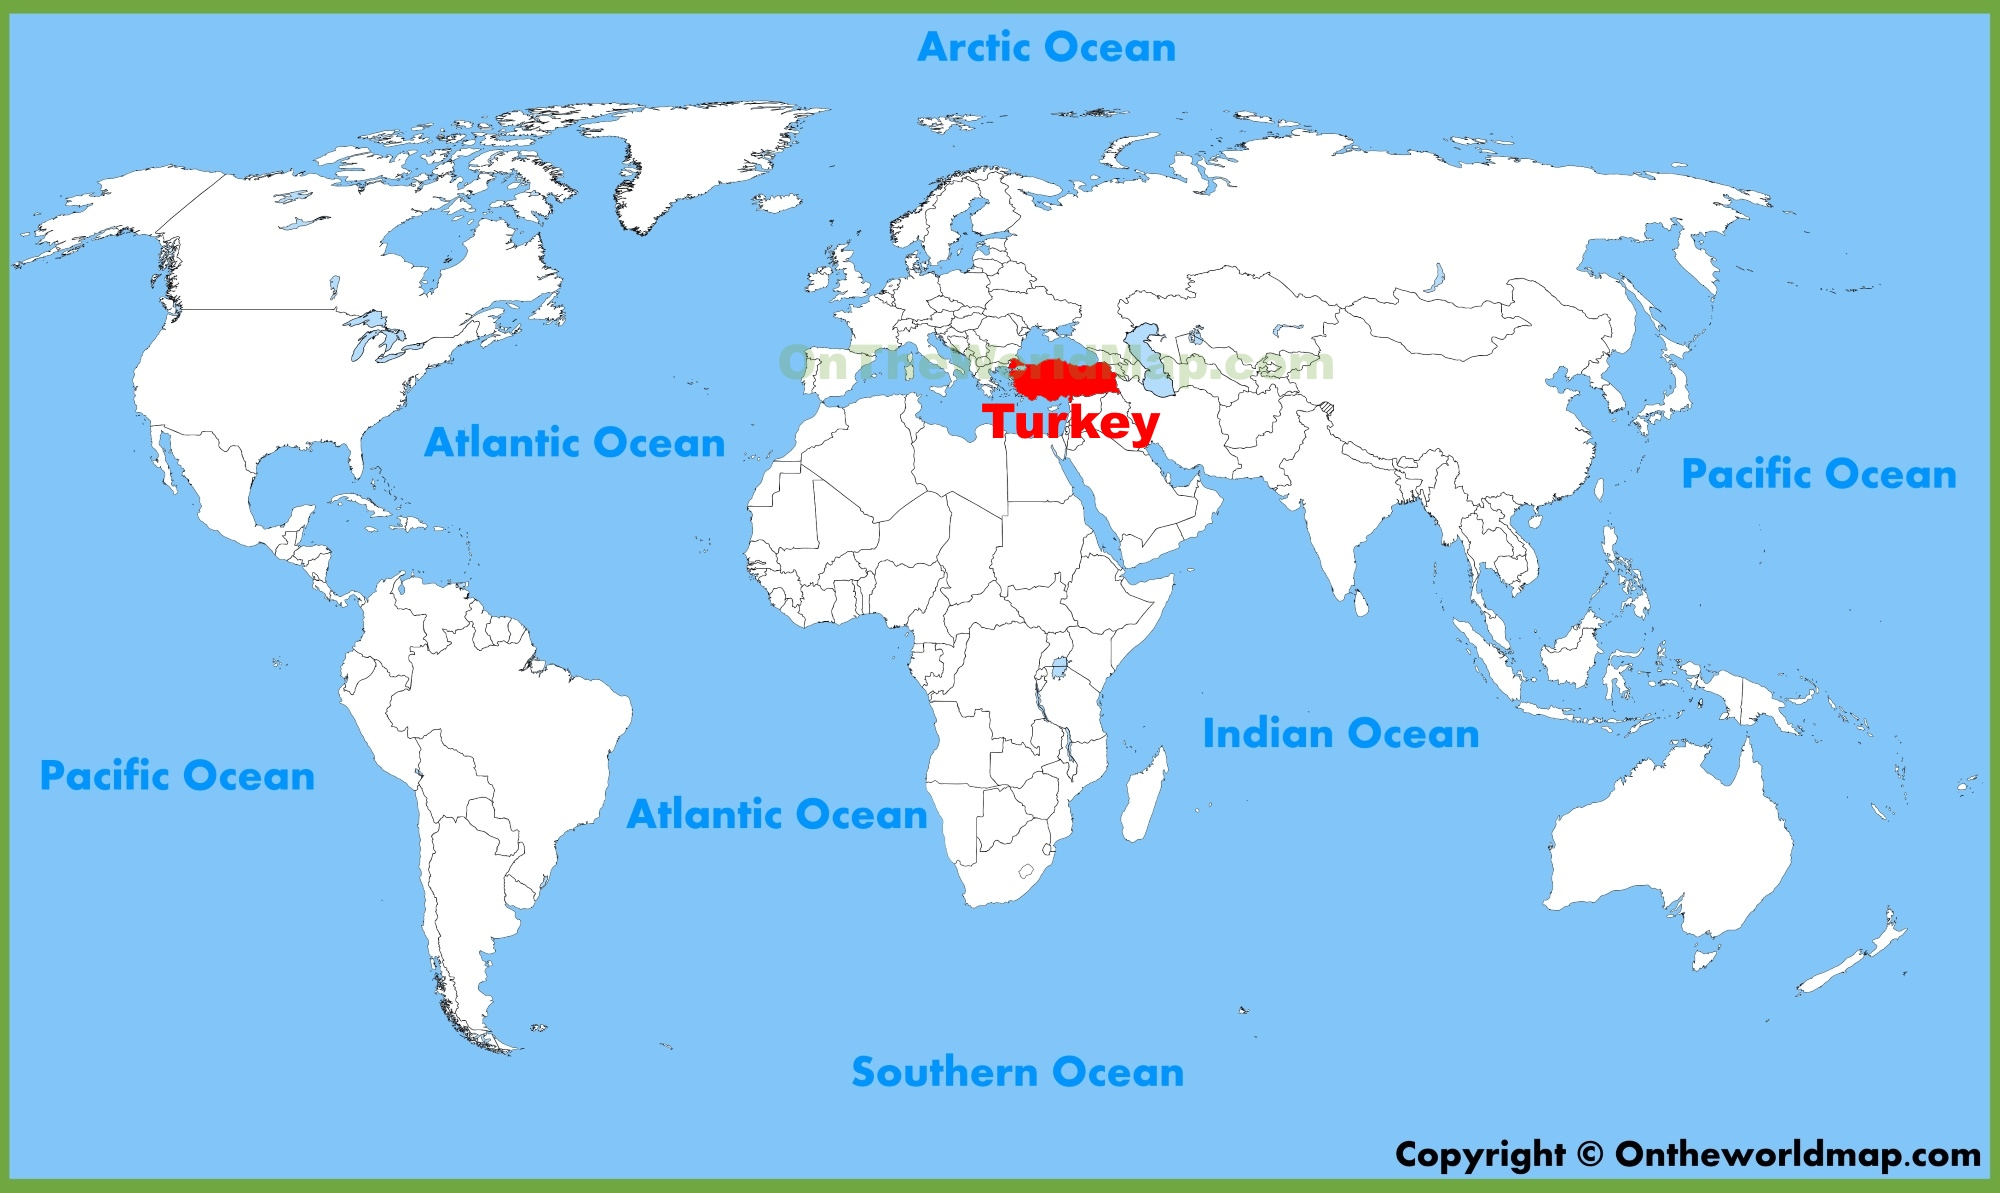 Turkey location on the World Map on world map of greece, world map of egypt, world map of diego garcia, world map of romania, world map of iran, world map of syria, world map of albania, world map of russia, world map of british territory, world map of iraq, world map of aleutian islands, world map of gaza, world map of morocco, world map of us virgin islands, world map of china, world map of jordan, world map of maldives, world map of peru, world map of the himalayas, world map of singapore,